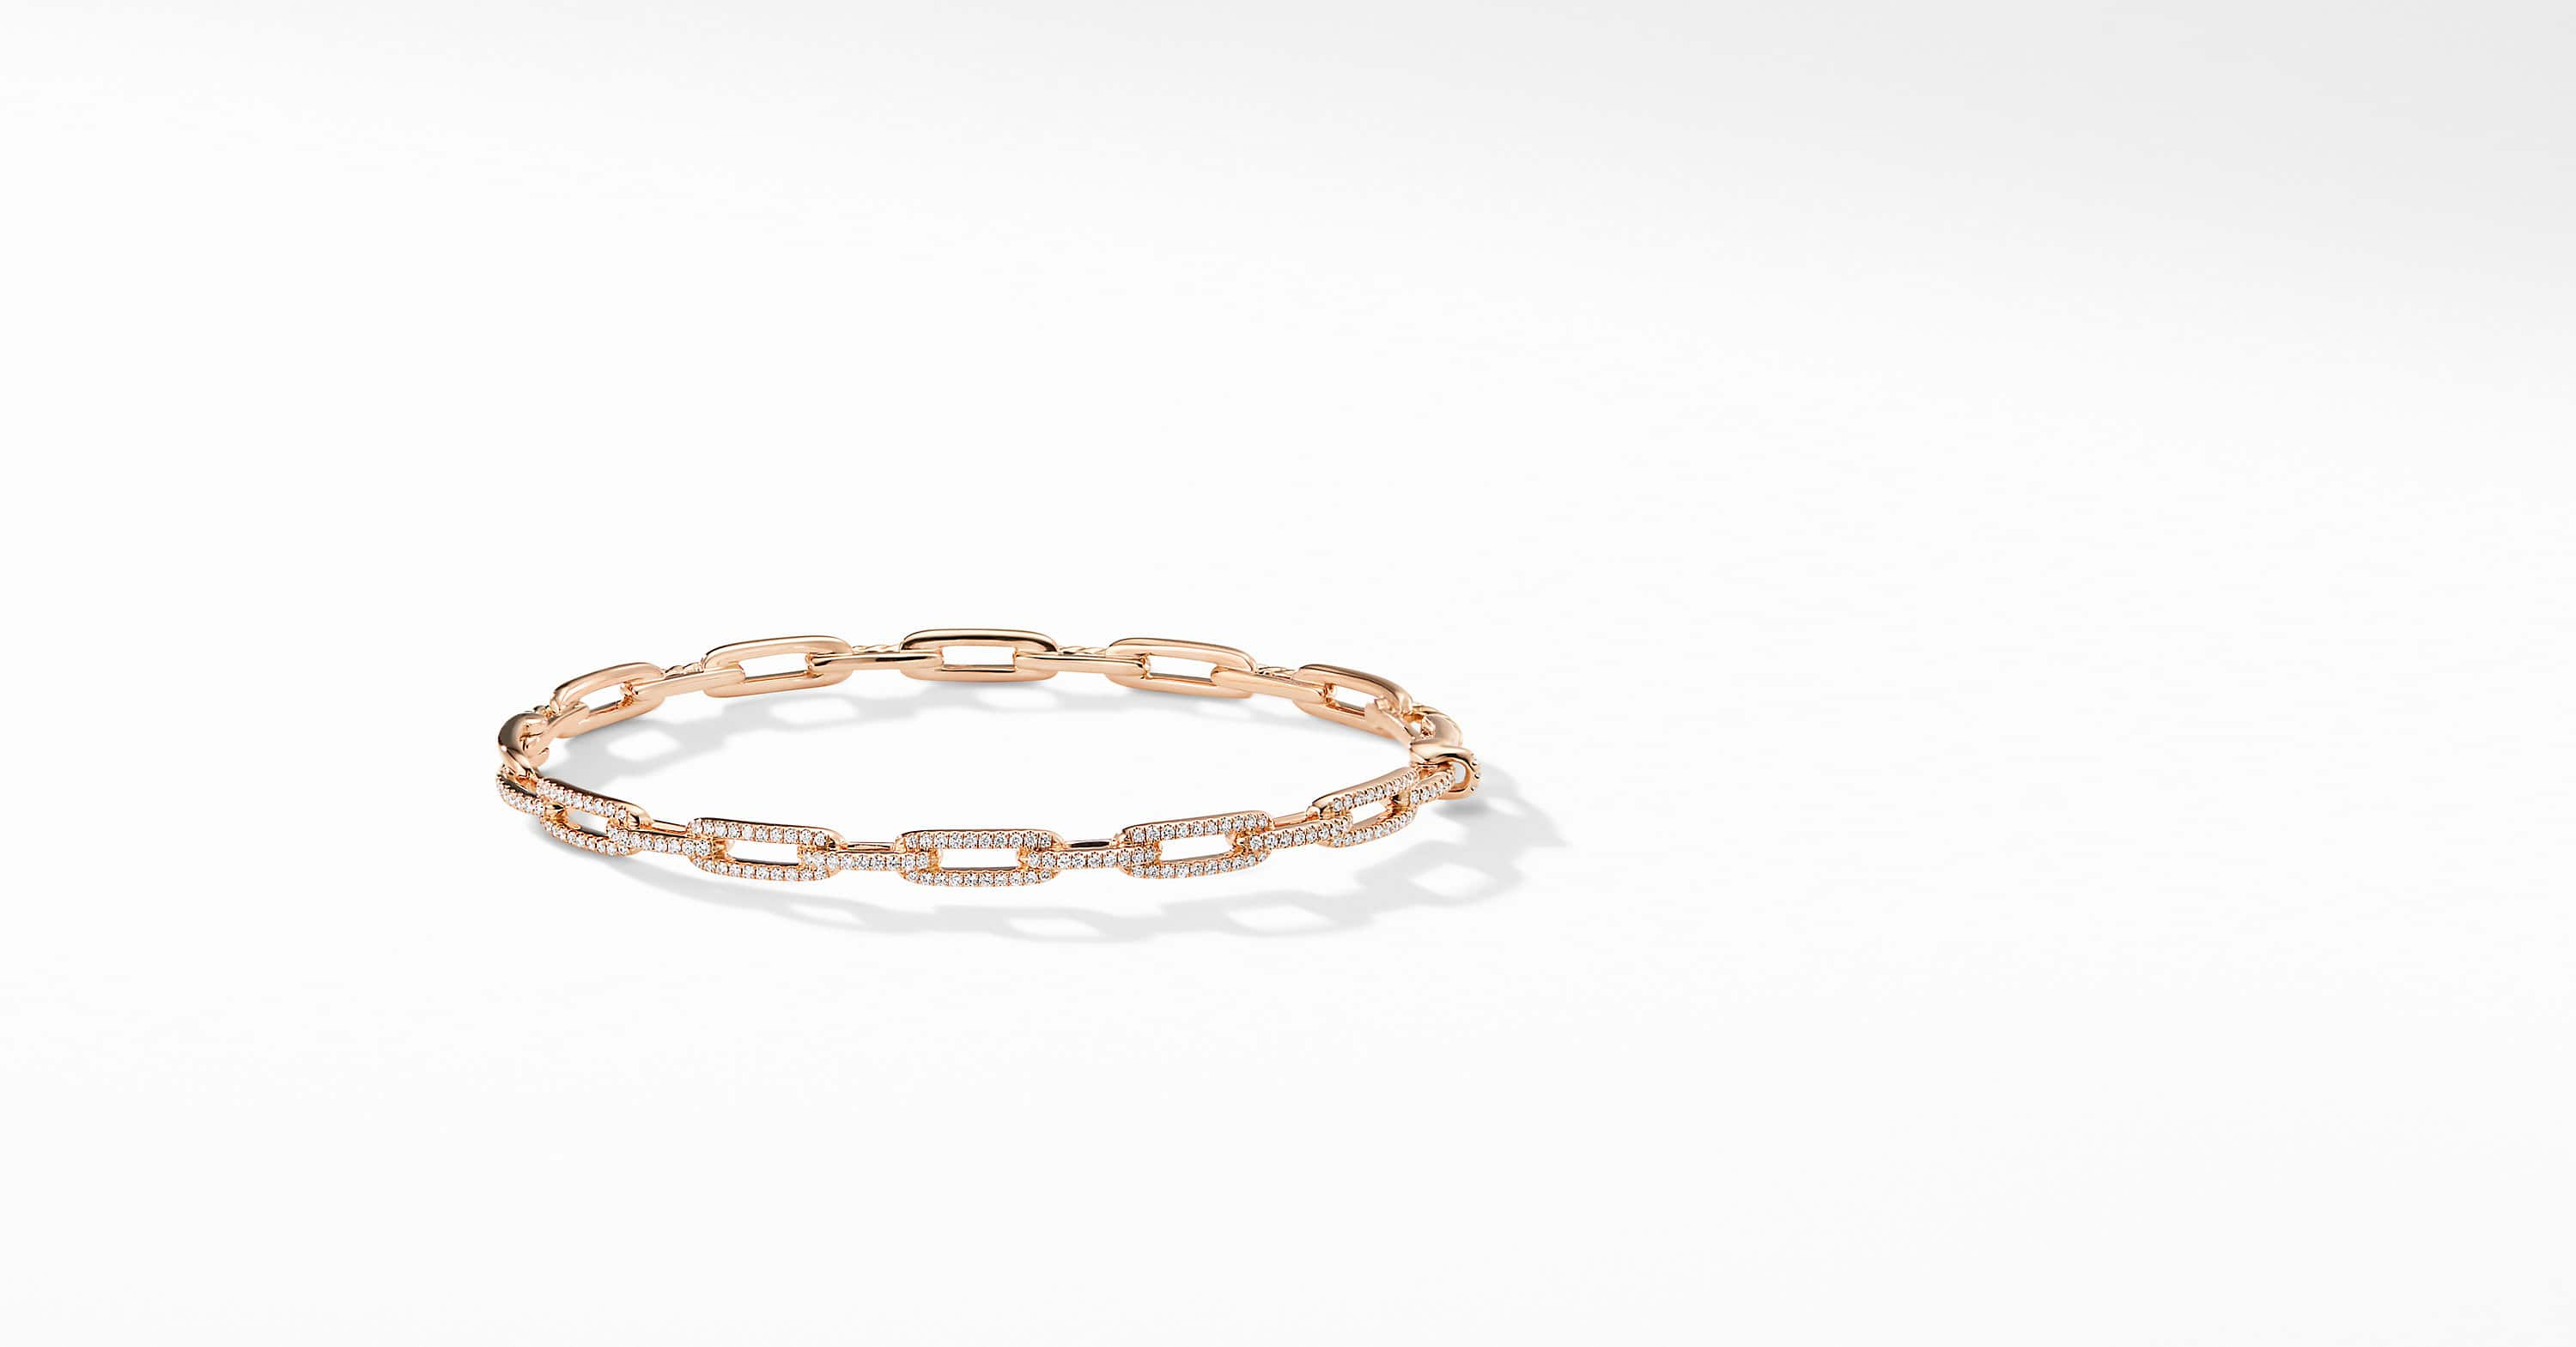 Bracelet Stax à maillons en or rose 18K, avec diamants, 4 mm